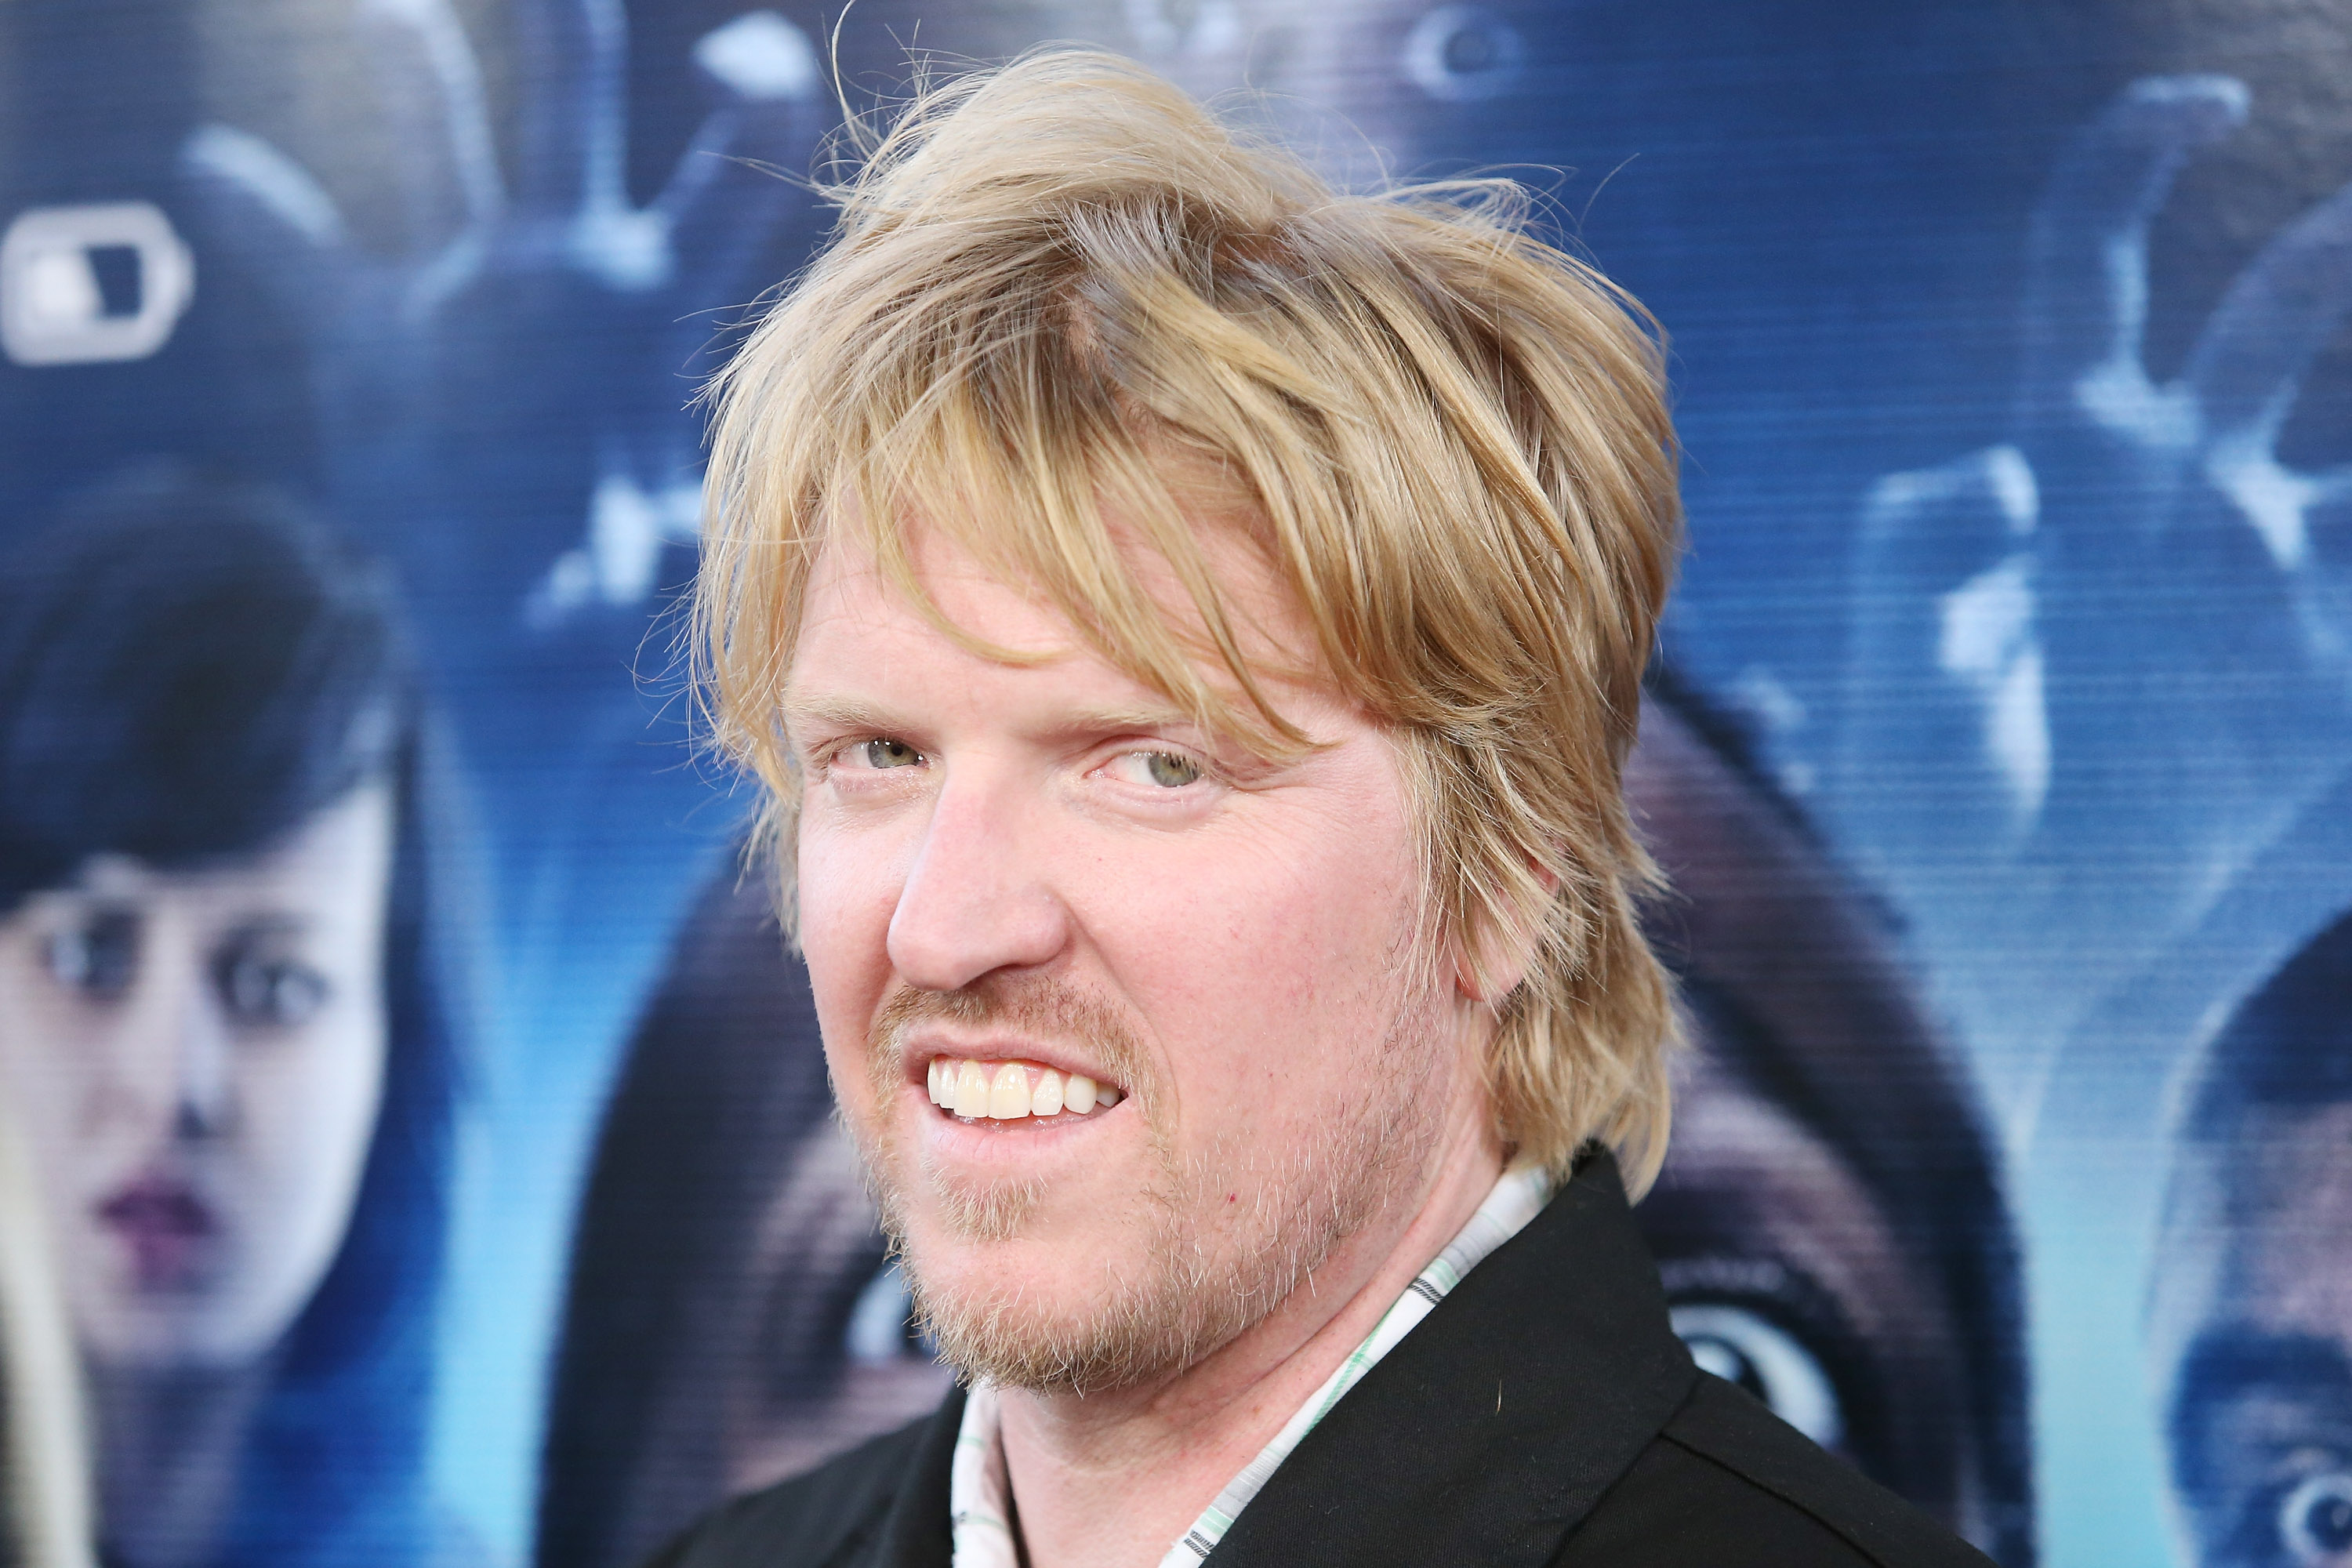 """LOS ANGELES, CA - APRIL 16: Jake Busey arrives at the Los Angeles premiere of """"A Haunted House 2"""" held at Regal Cinemas L.A. Live on April 16, 2014 in Los Angeles, California. (Photo by Michael Tran/FilmMagic)"""